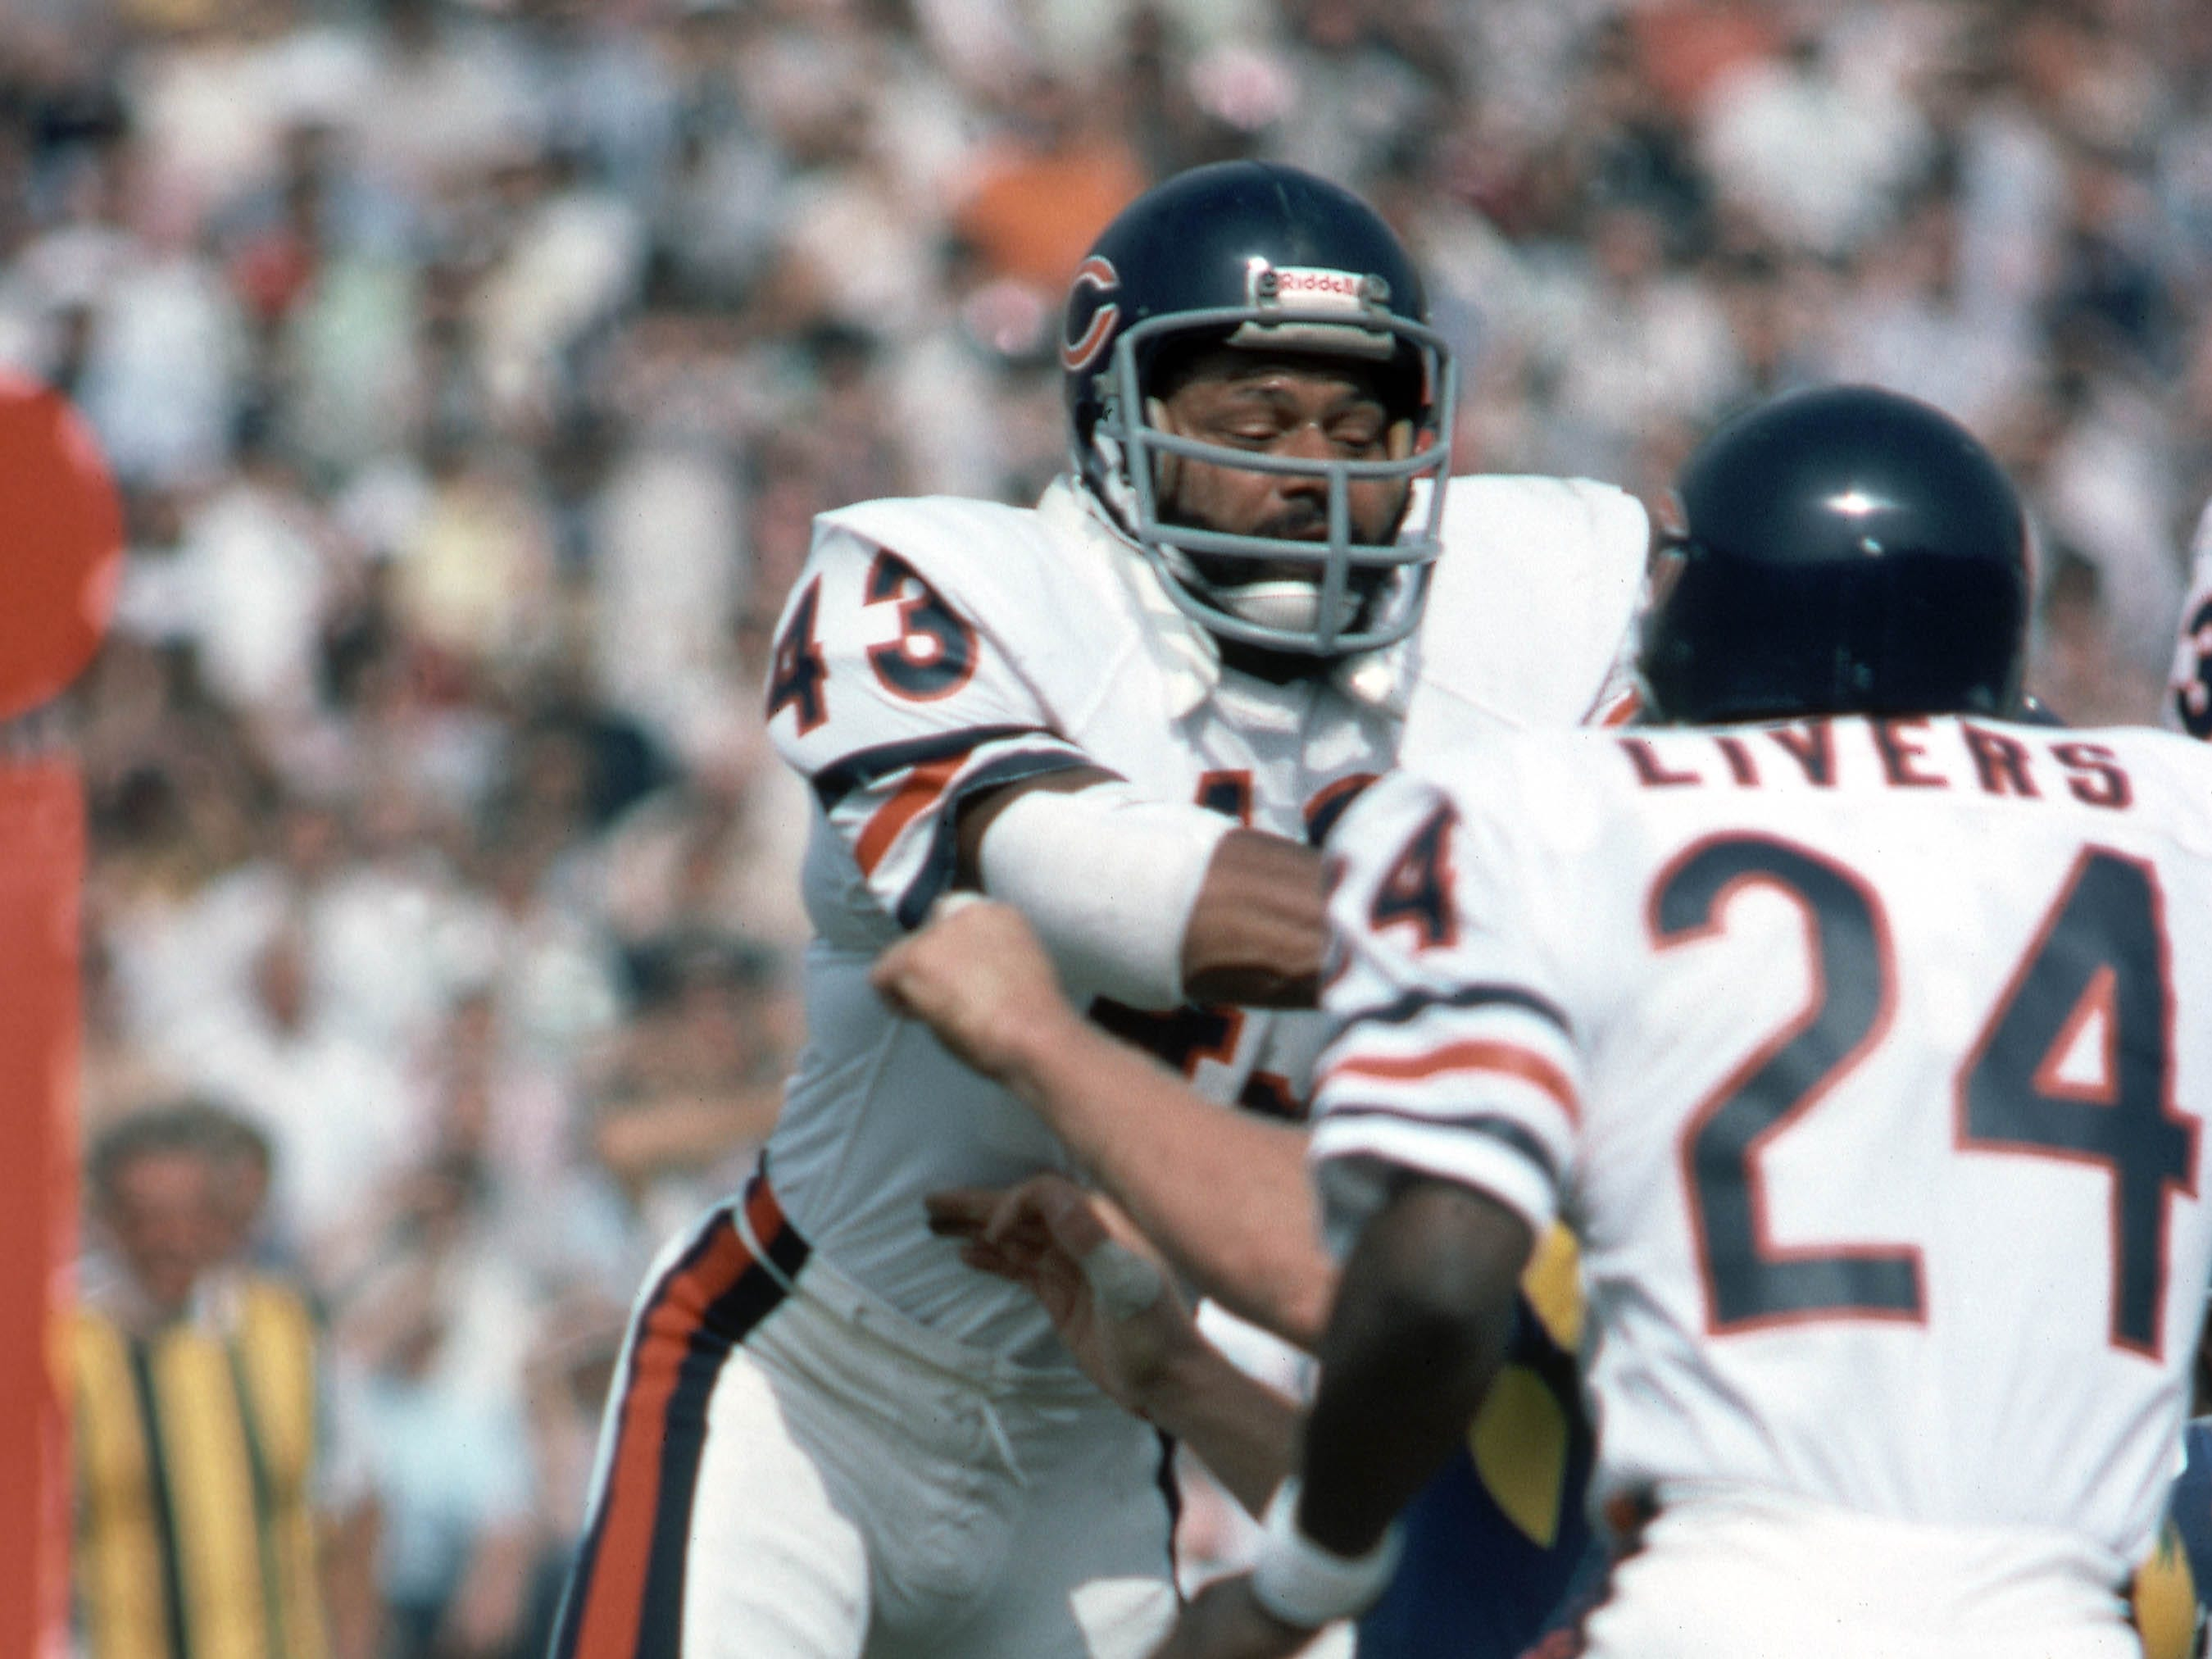 Chicago Bears defensive players Craig Clemons (43) and Virgil Livers (24) in action against the Los Angeles Rams at Los Angeles Memorial Coliseum in 1976.  Clemons, a former Iowa Hawkeye, was the 12th pick of the first round of the 1972 NFL Draft by the Chicago Bears.